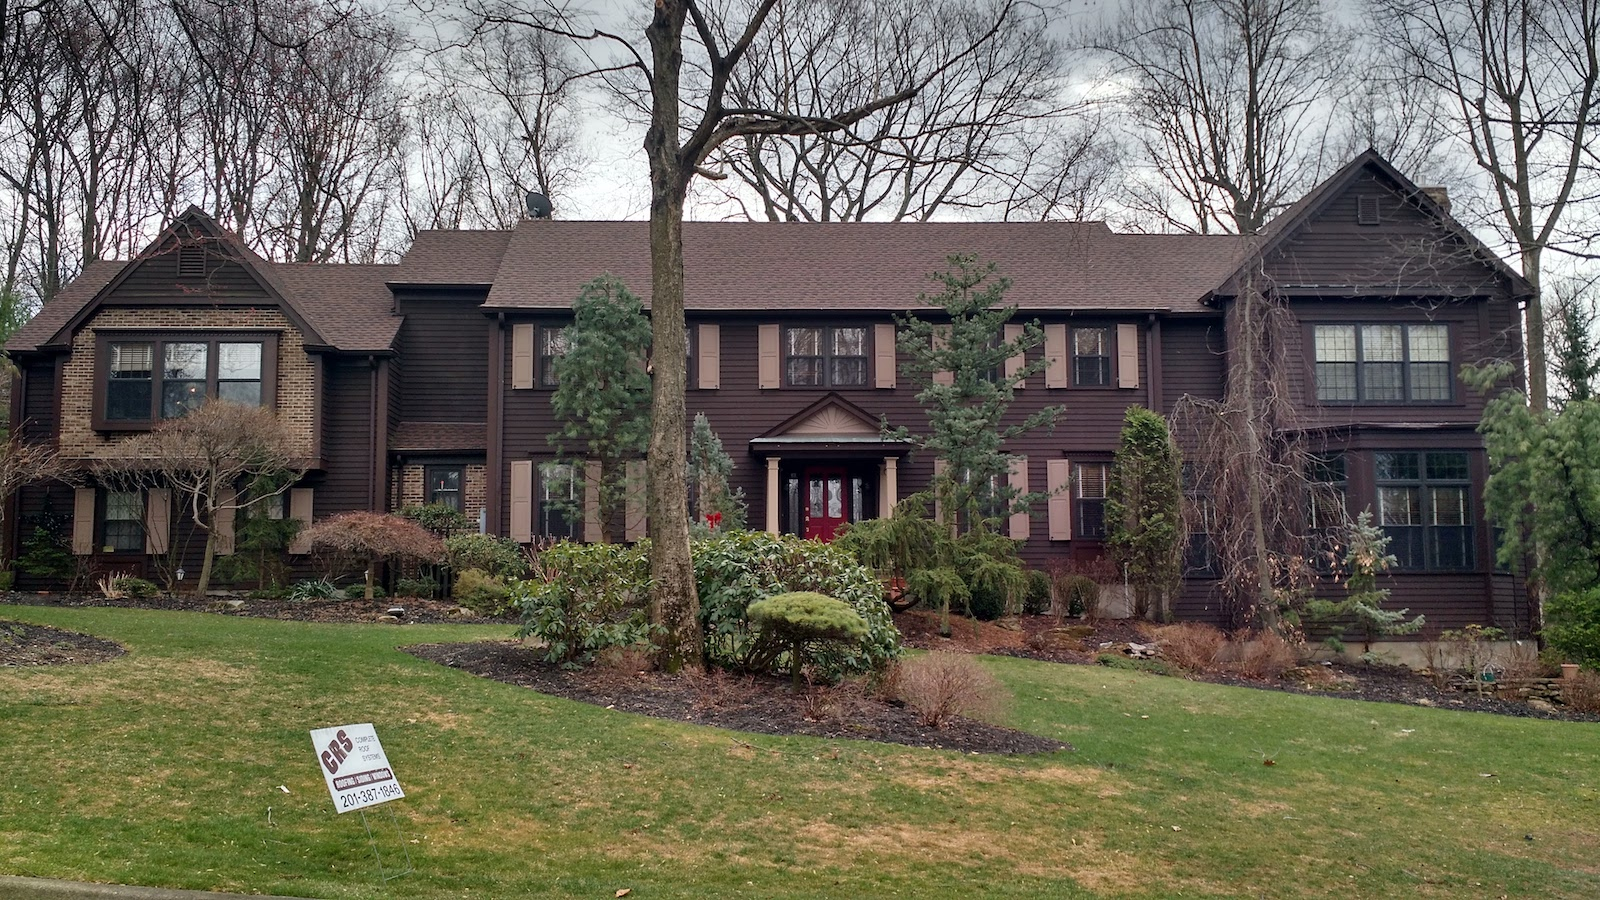 Residential Roofing Contractors In Bergen County: 5 Things To Know